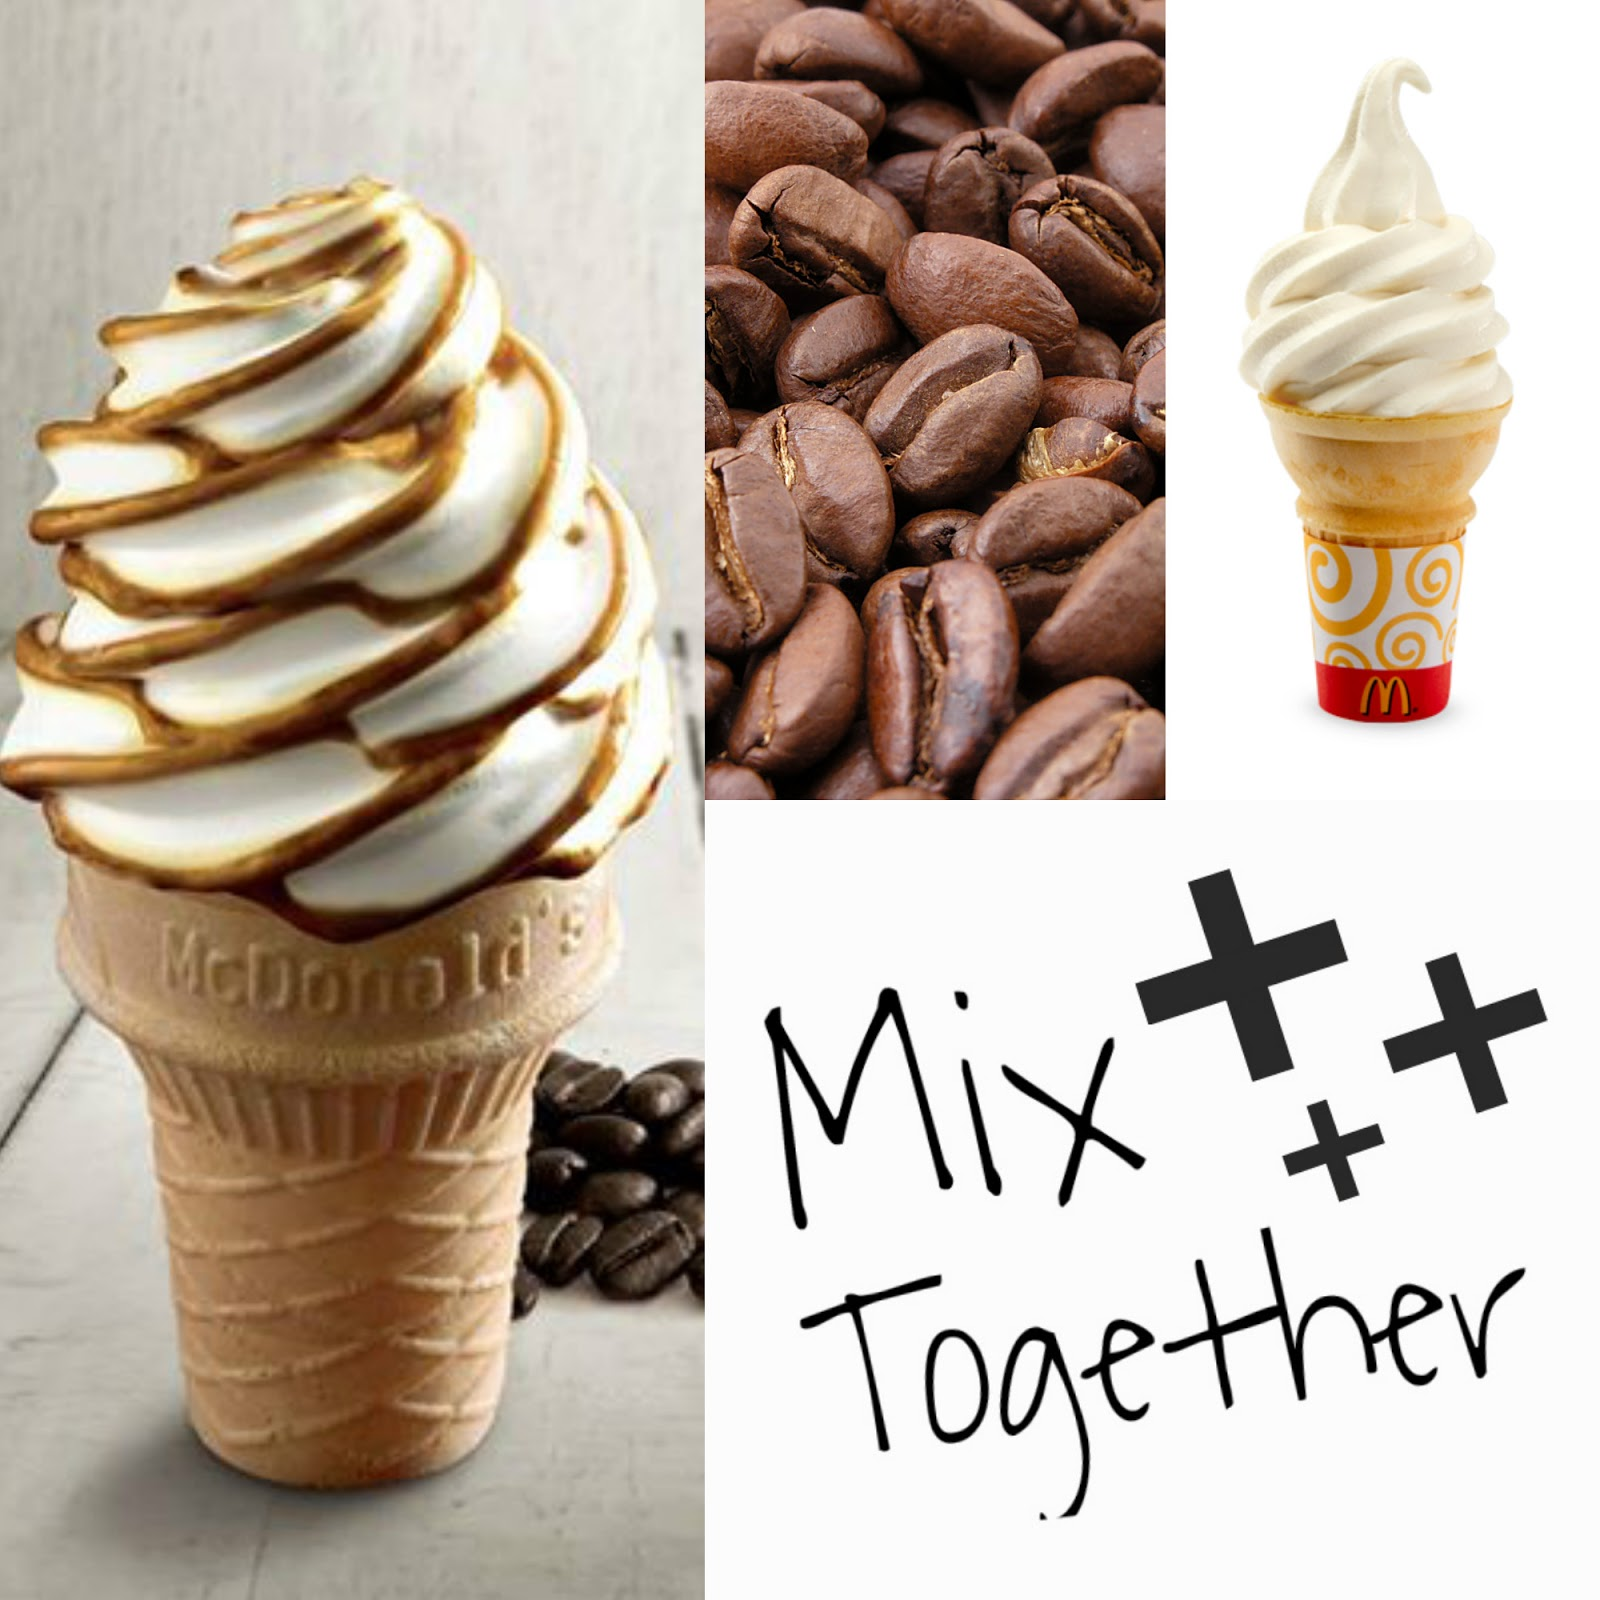 McDonald's clipart ice cream McDonald's to Addition Flavour The